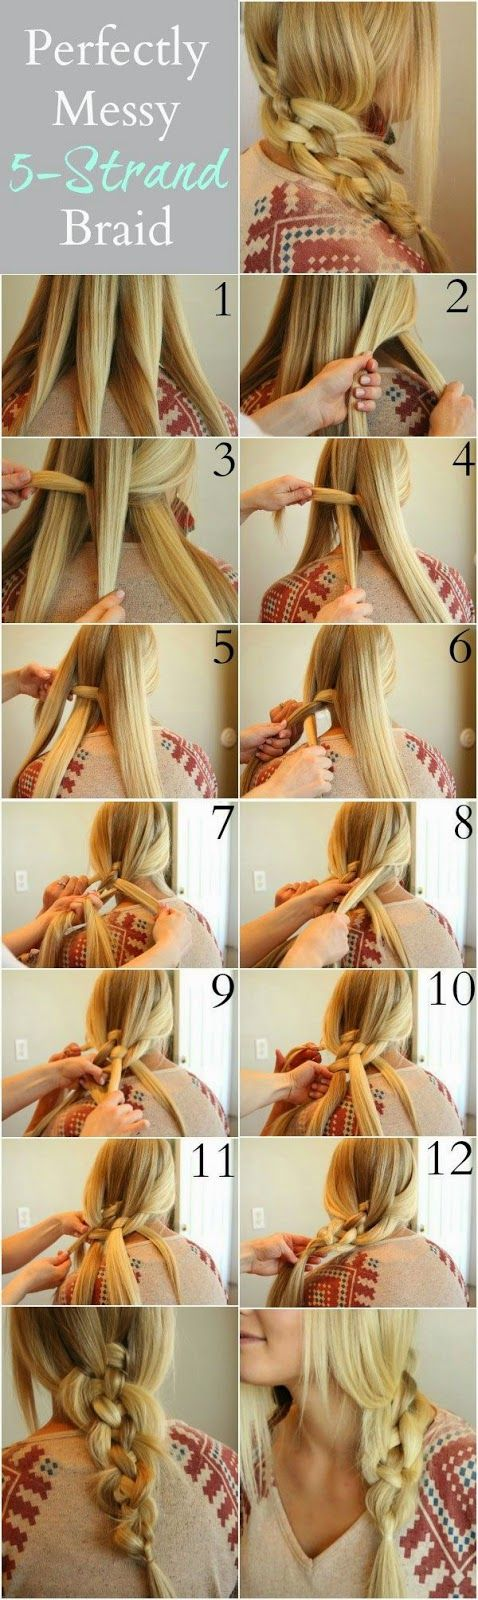 How to Upgrade Your Braid-Tutorial